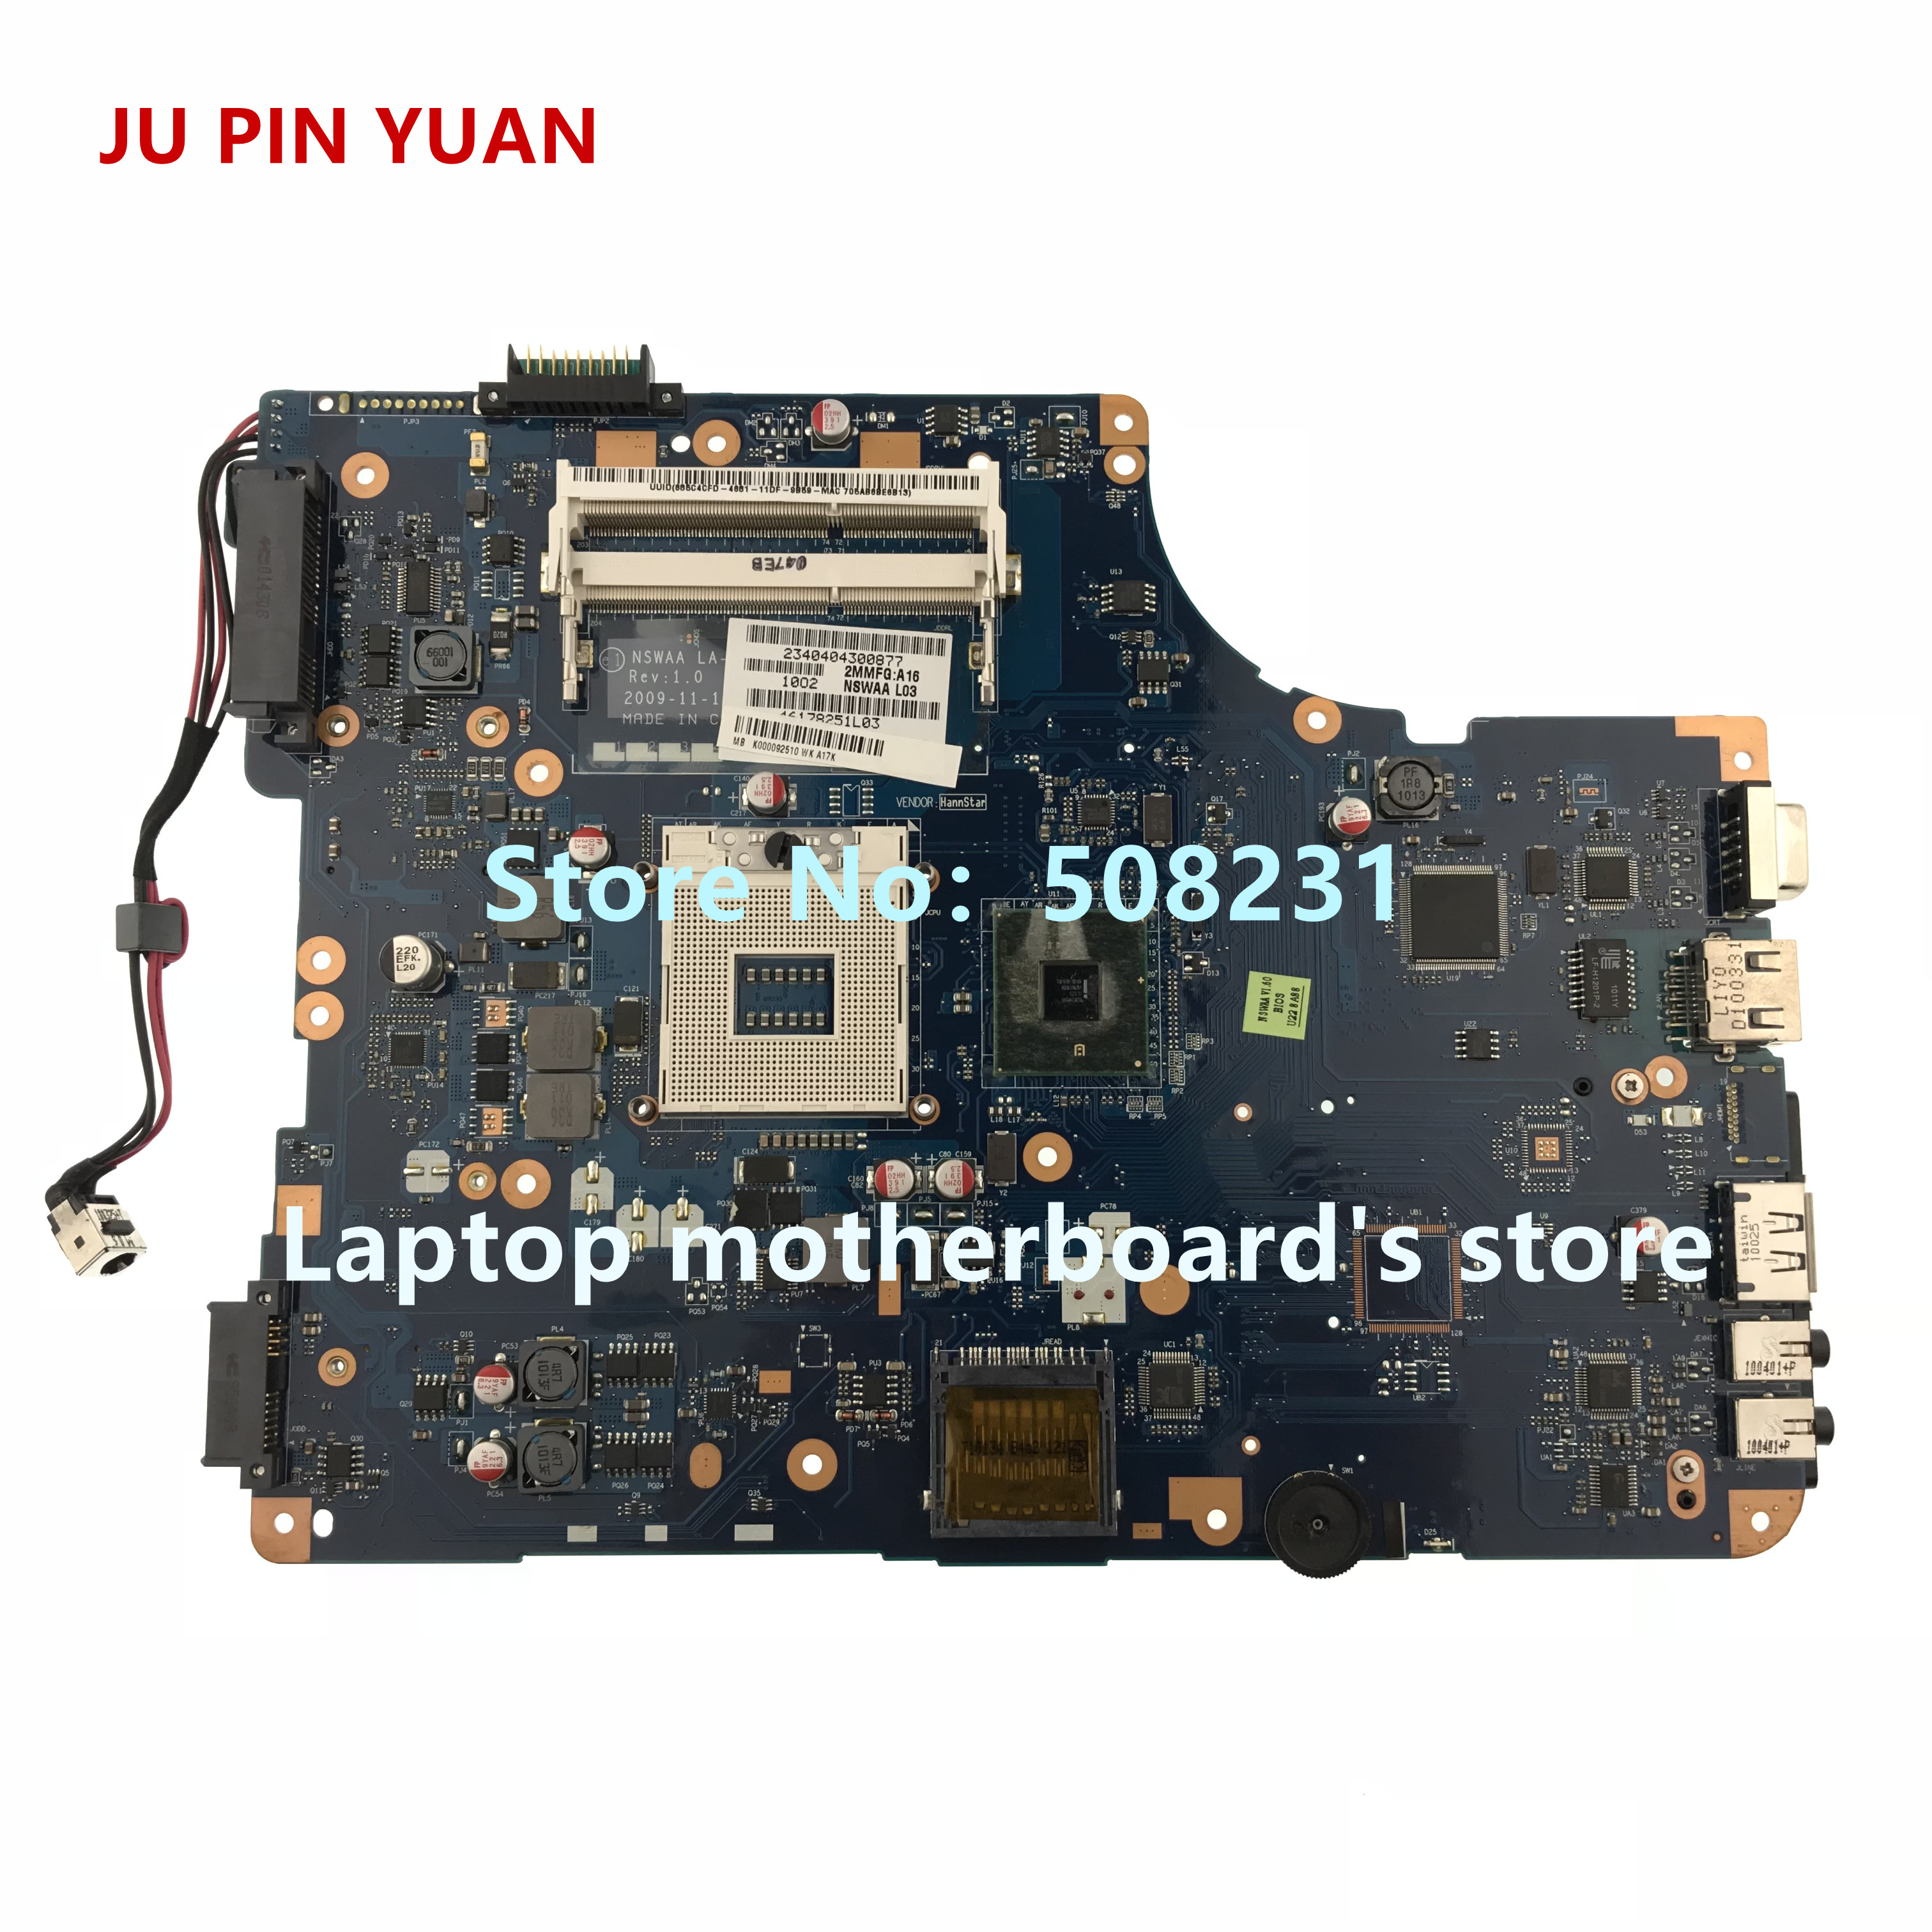 JU PIN YUAN K000092510 LA-5321P mainboard For <font><b>Toshiba</b></font> Satellite <font><b>L500</b></font> L550 Series laptop <font><b>motherboard</b></font> All functions fully Tested image